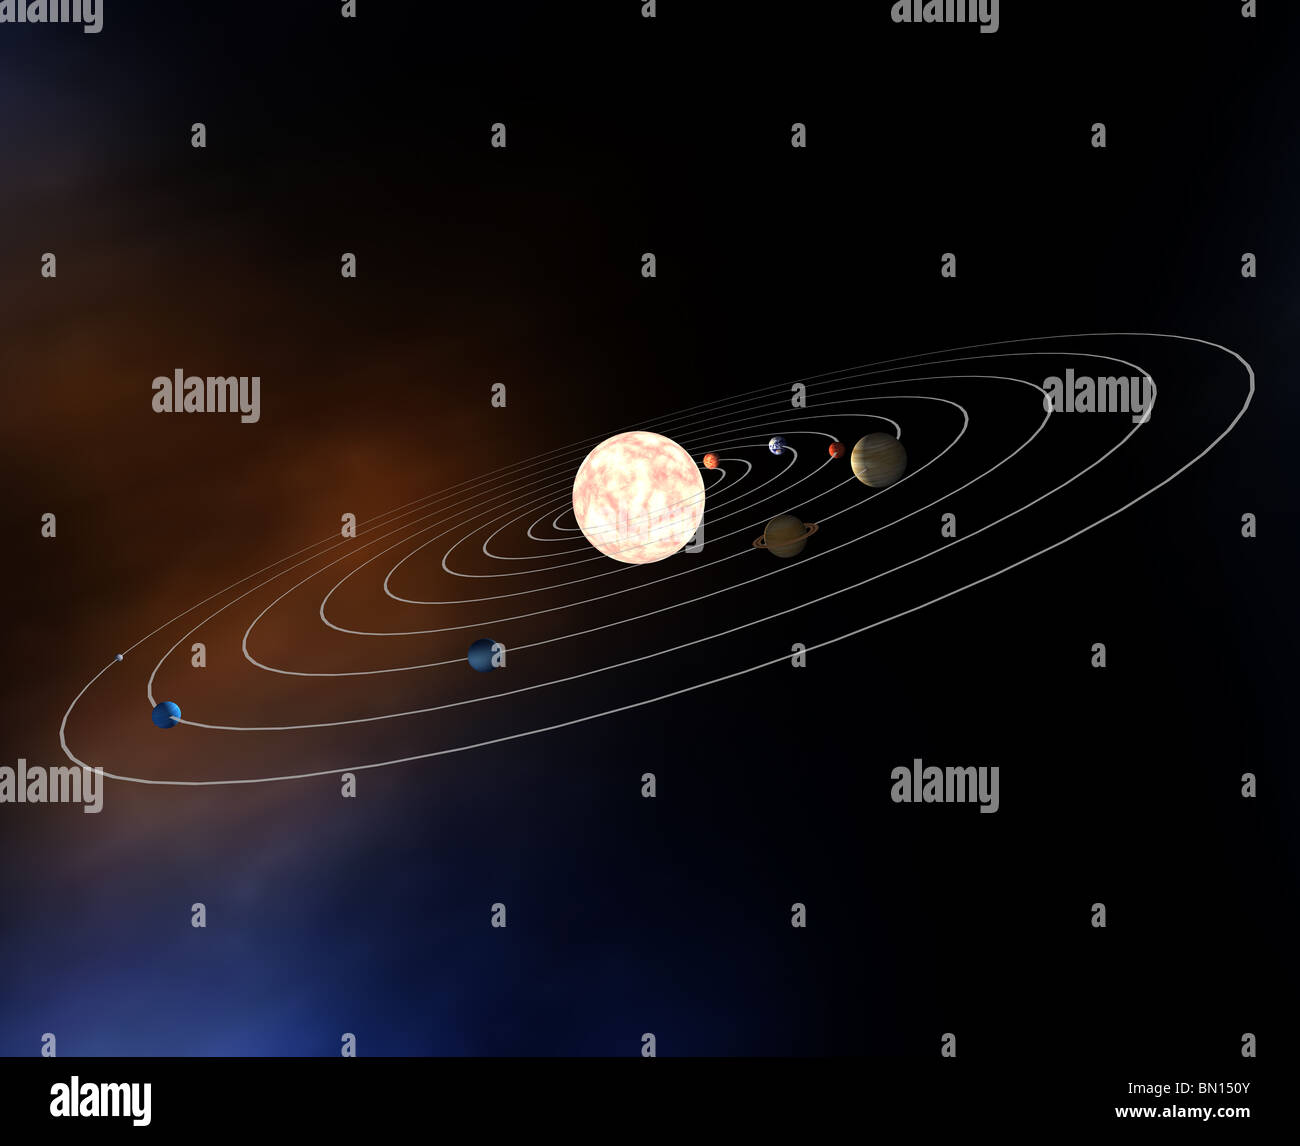 Top view of the planets in the solar system illustration model top view of the planets in the solar system illustration model rendered sciox Choice Image